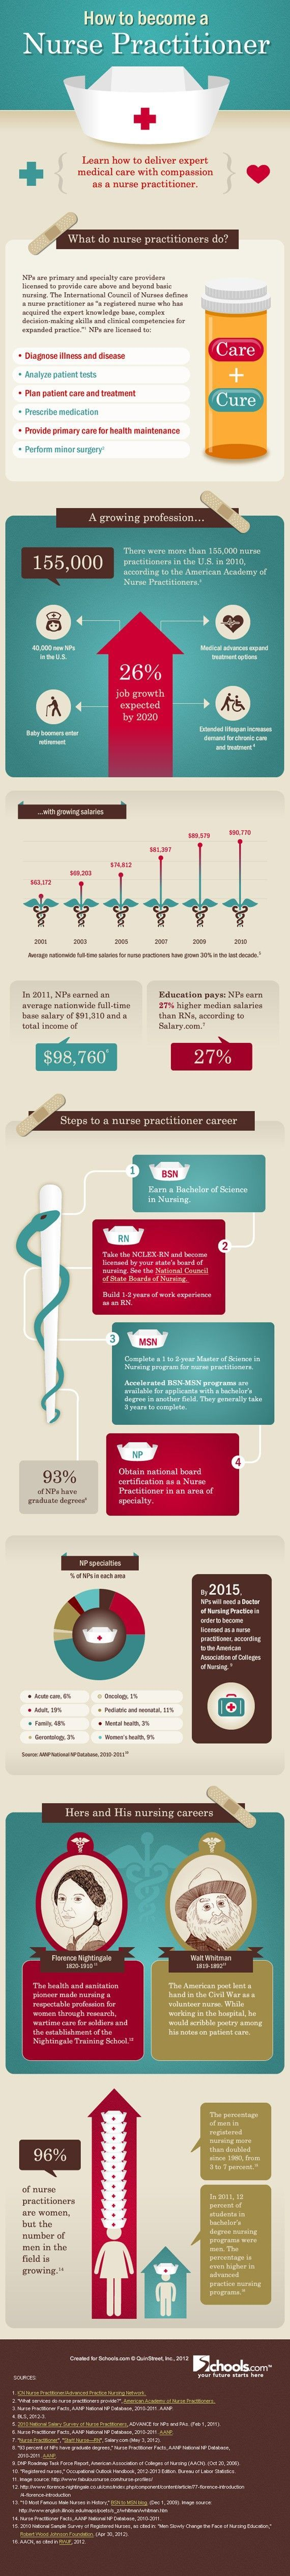 How To Become A Nurse Practitioner Infographic